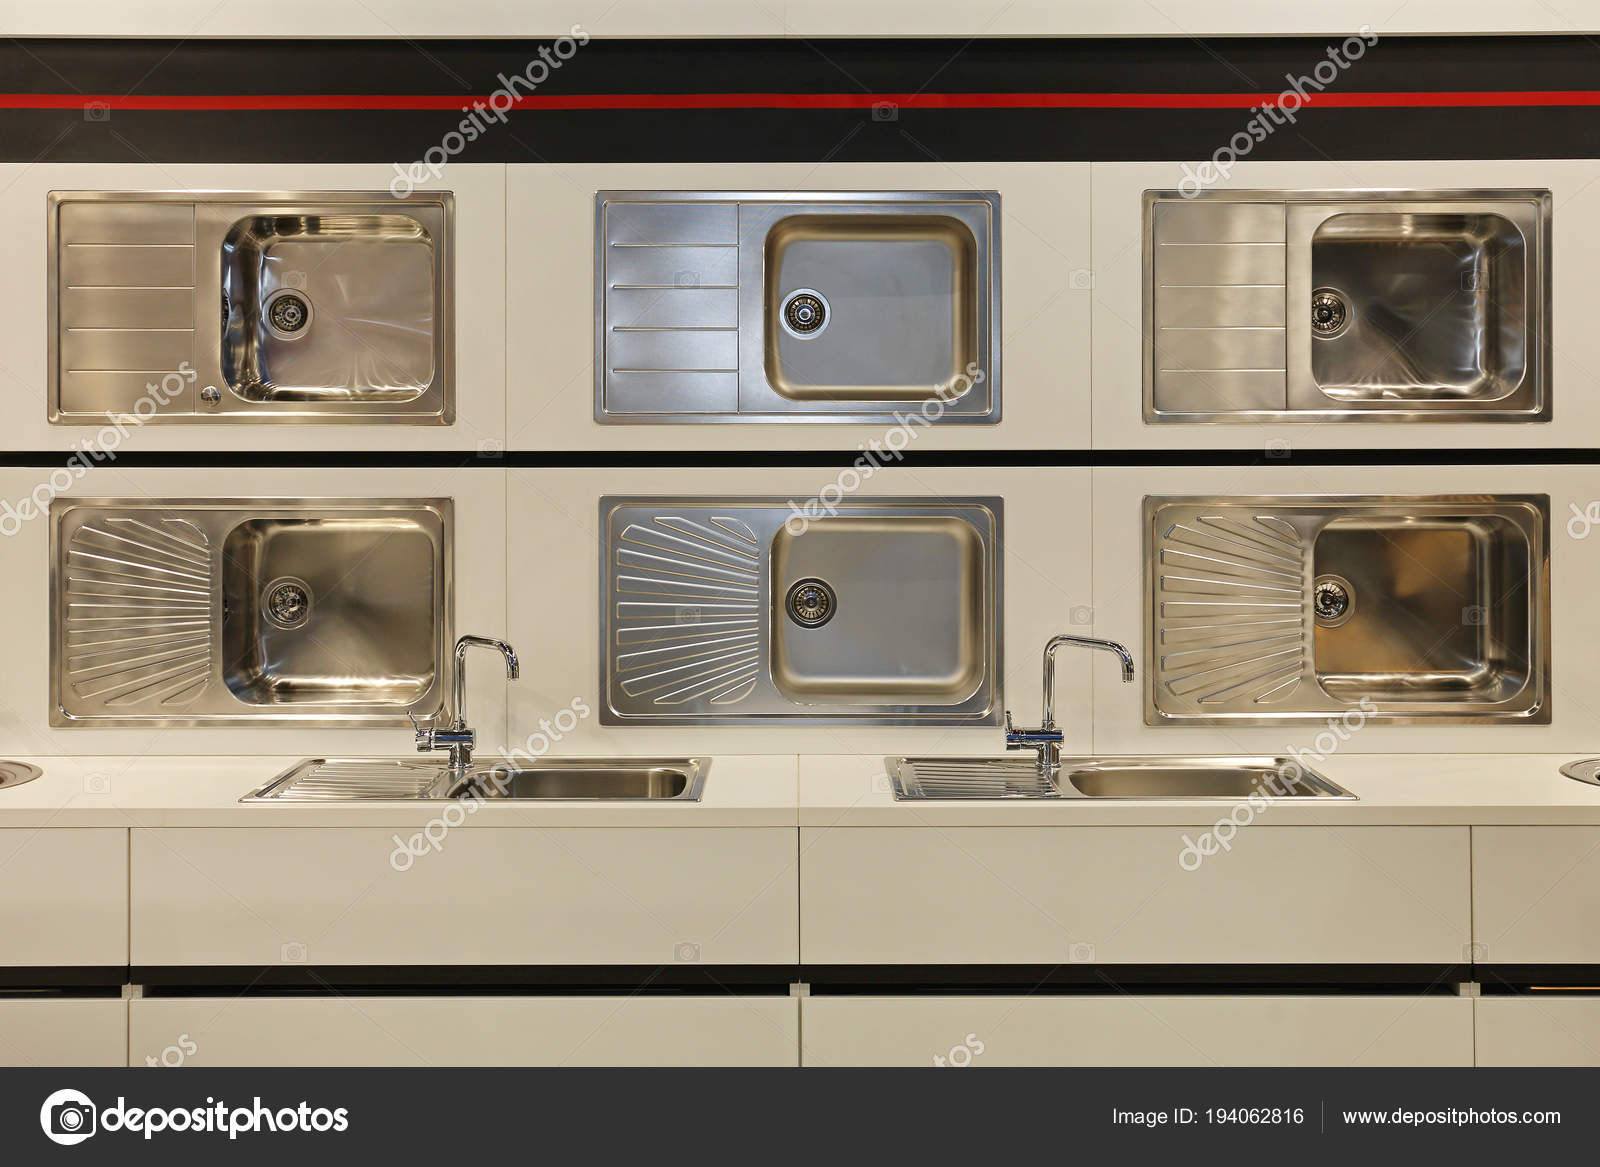 new kitchen sink how to build your own cabinets 新厨房水槽 图库照片 c baloncici 194062816